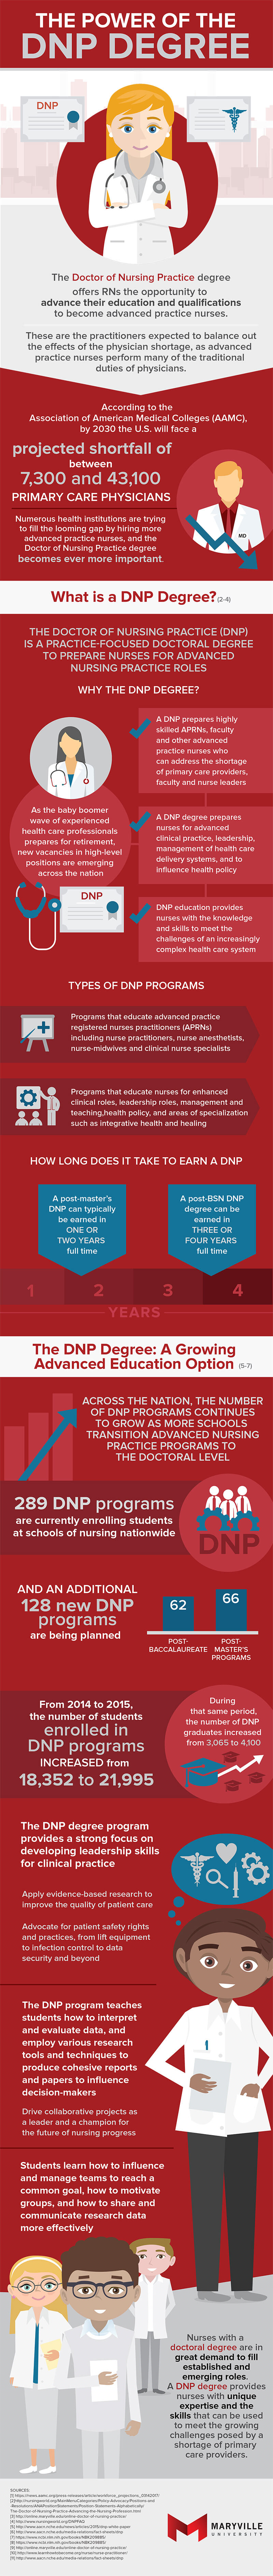 An infographic about the DNP degree by Maryville University.